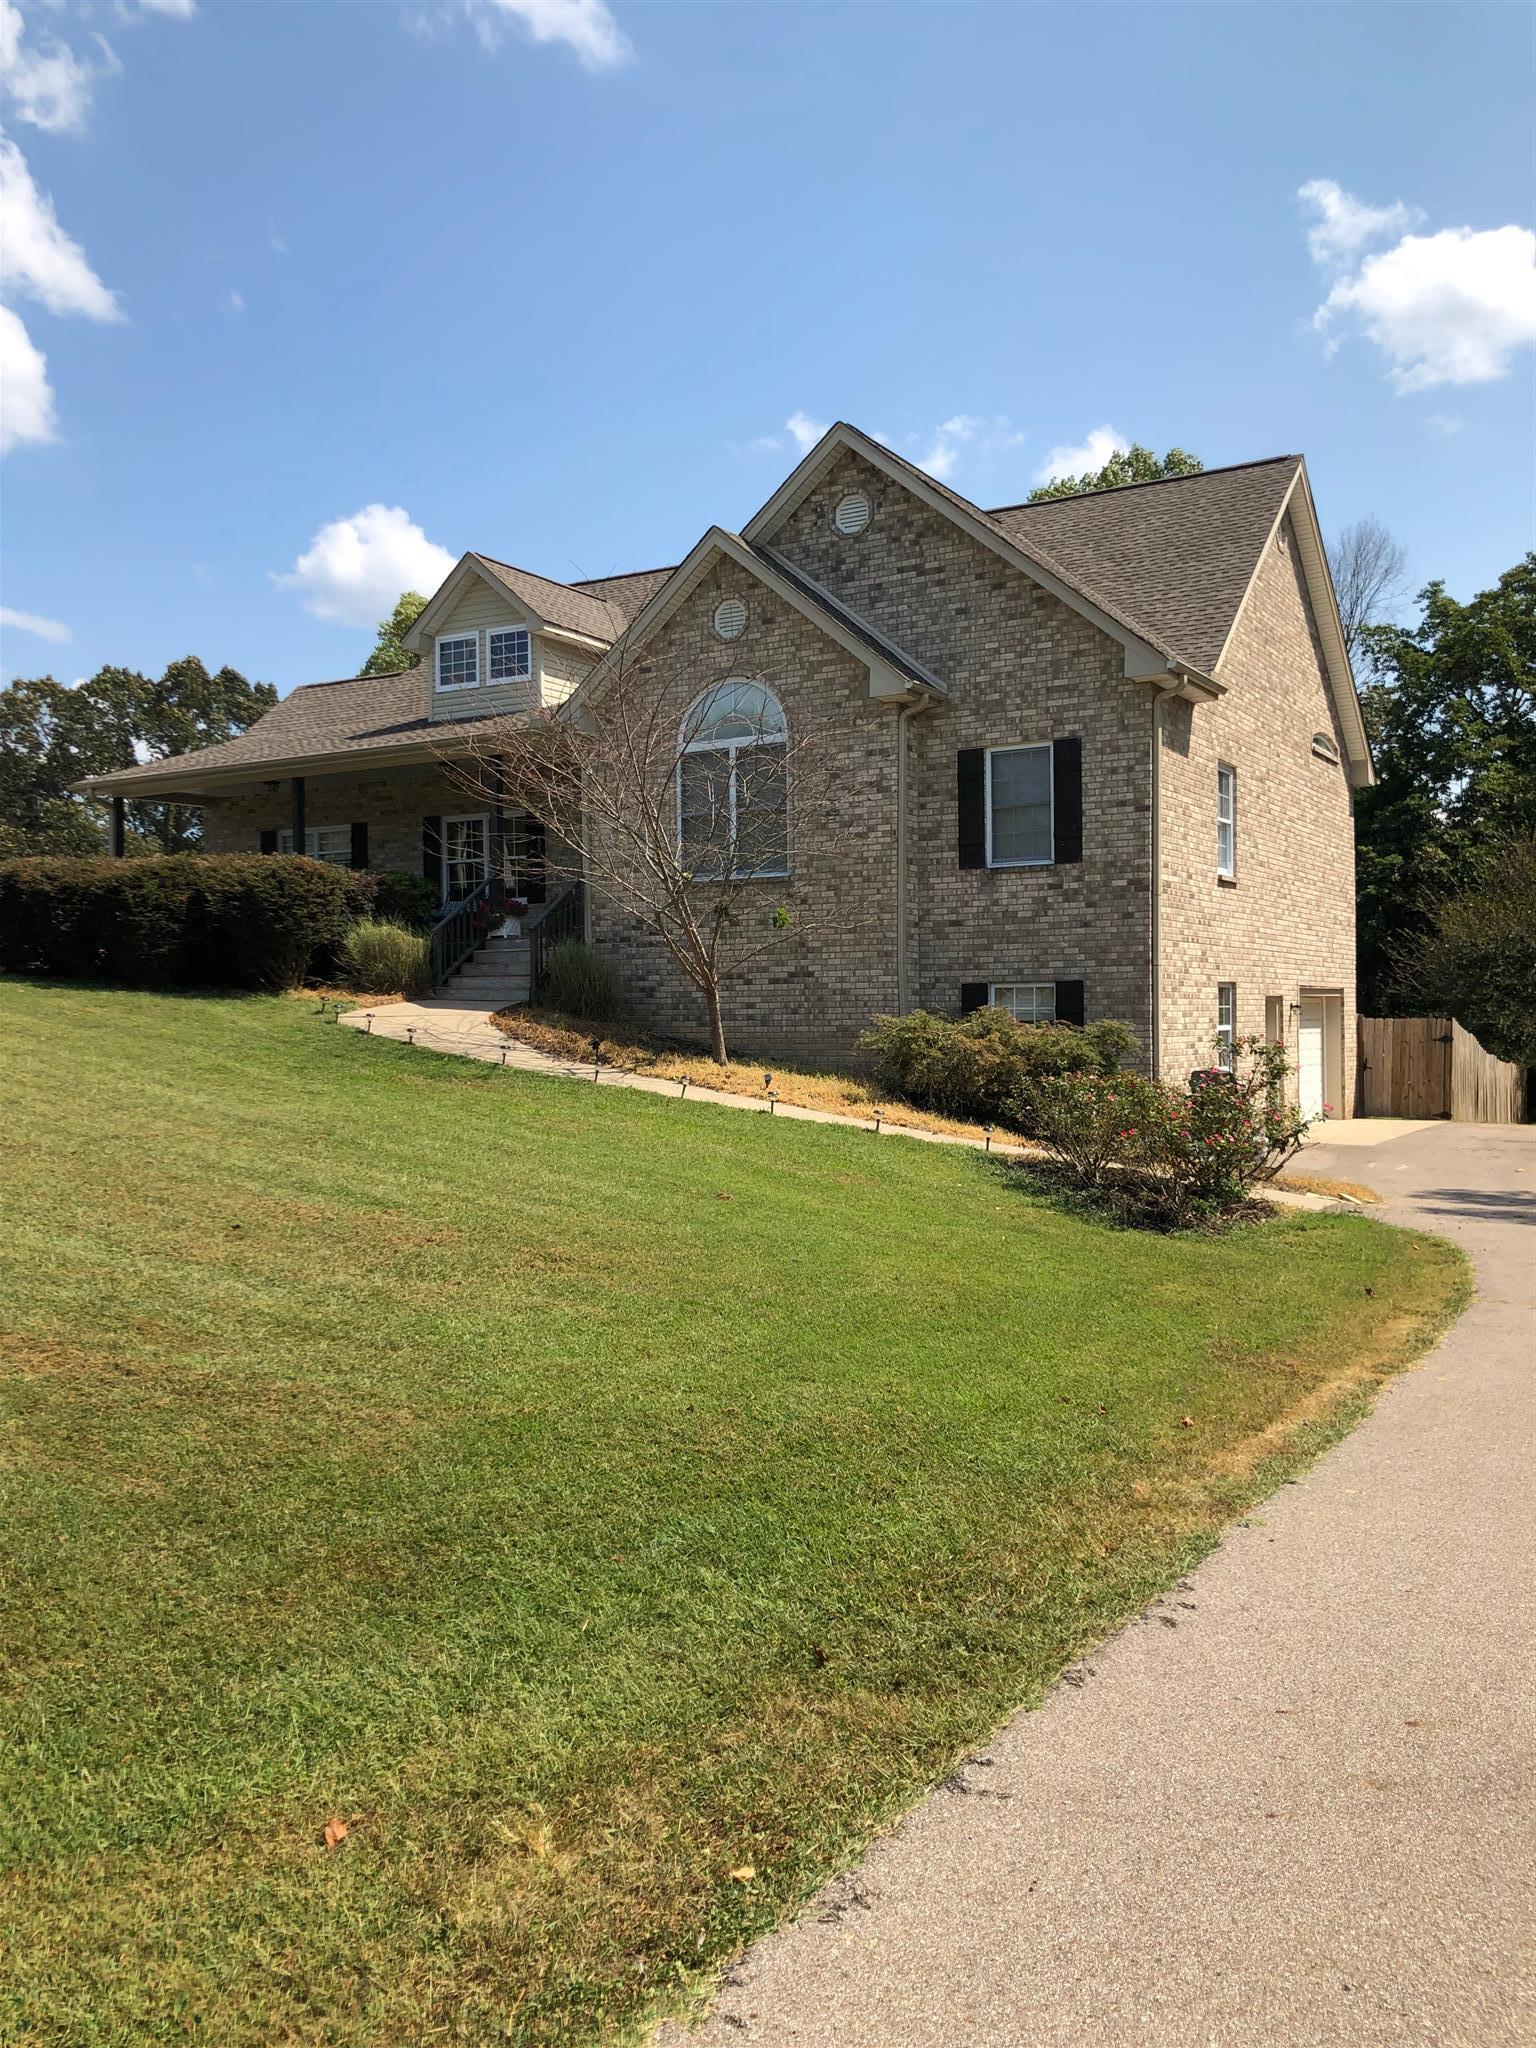 9072 Carolyn Way, Bon Aqua, TN 37025 - Bon Aqua, TN real estate listing